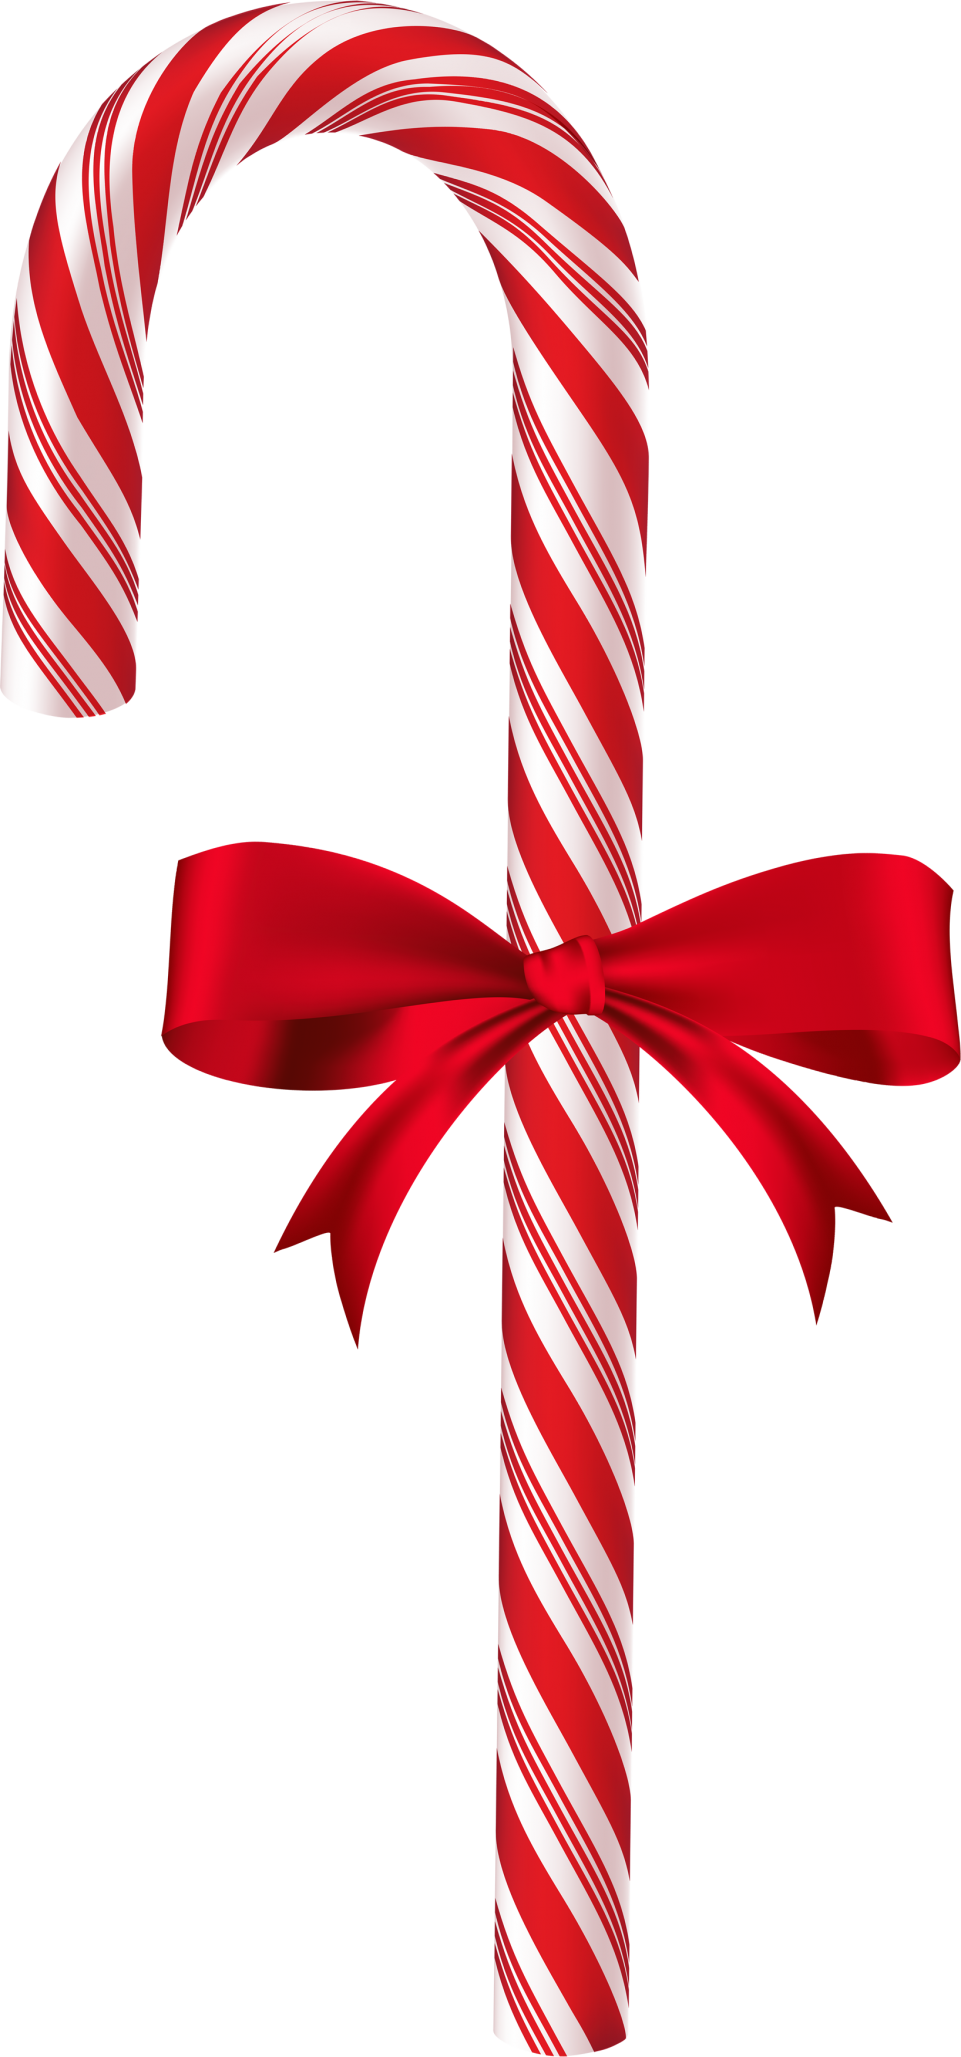 Large Christmas Candy Cane with Bow PNG Image